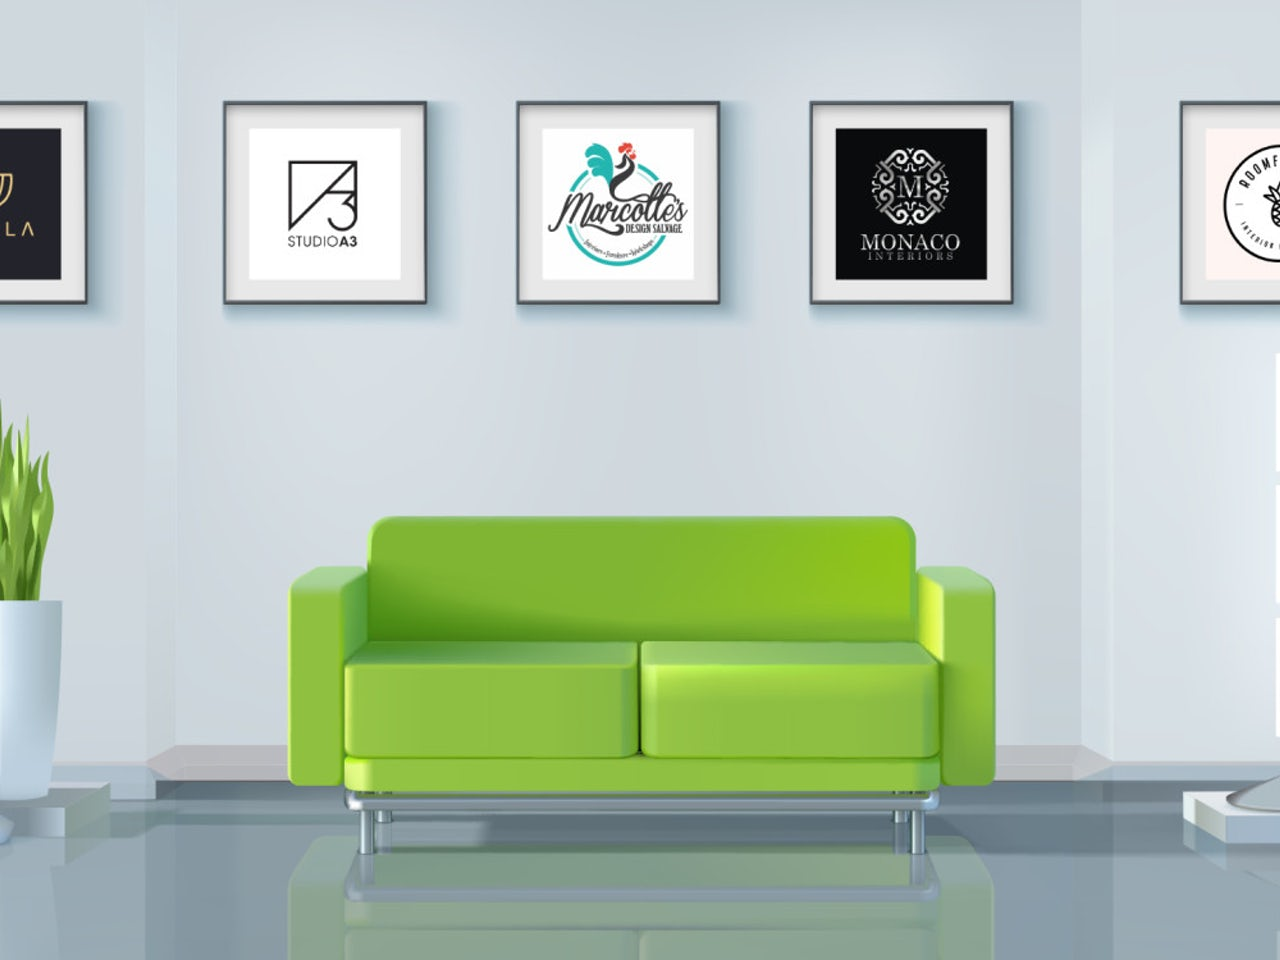 15 Interior Design And Decorator Logo Ideas For Well Furnished Success 99designs,Traditional African Attire Skirts Designs